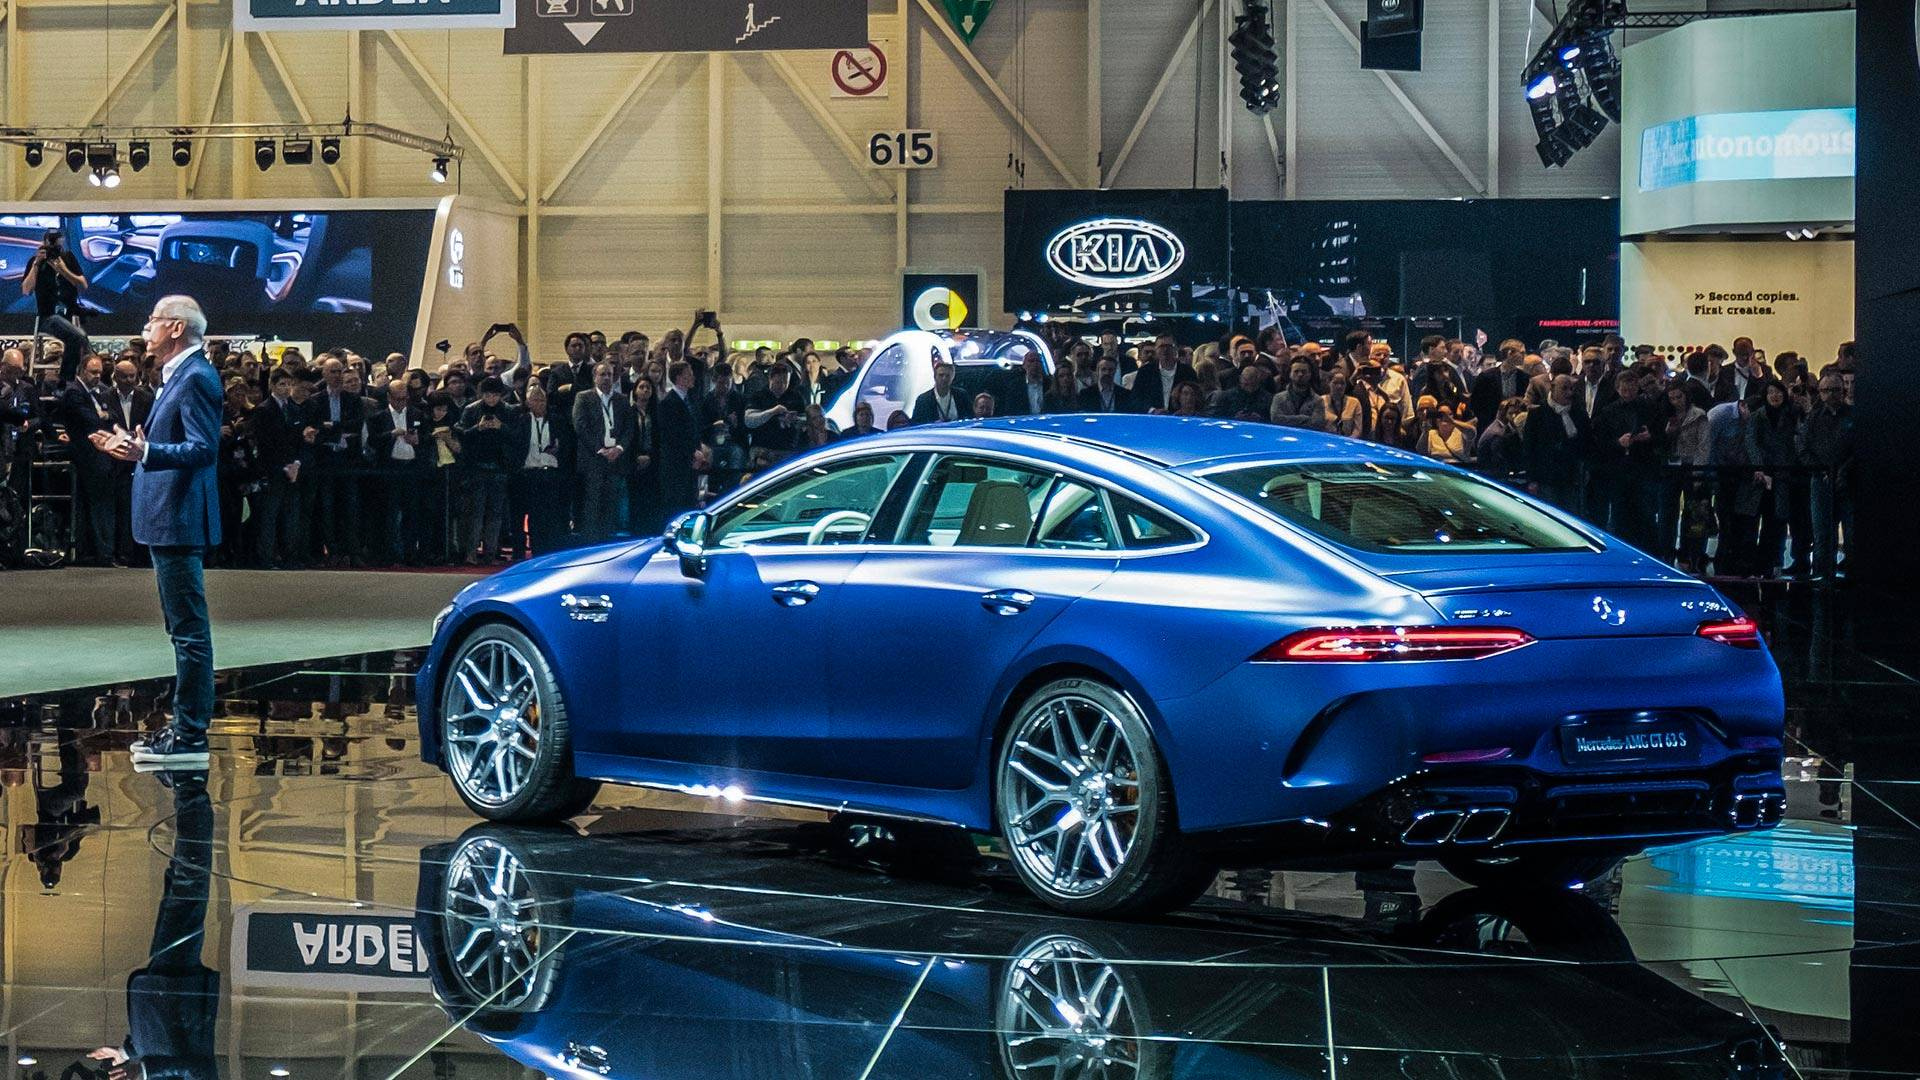 2019 Mercedes Amg Gt 4 Door Coupe Storms Geneva With 630 Hp Circuits Build This Versatile Electronic Combination Lock Part One